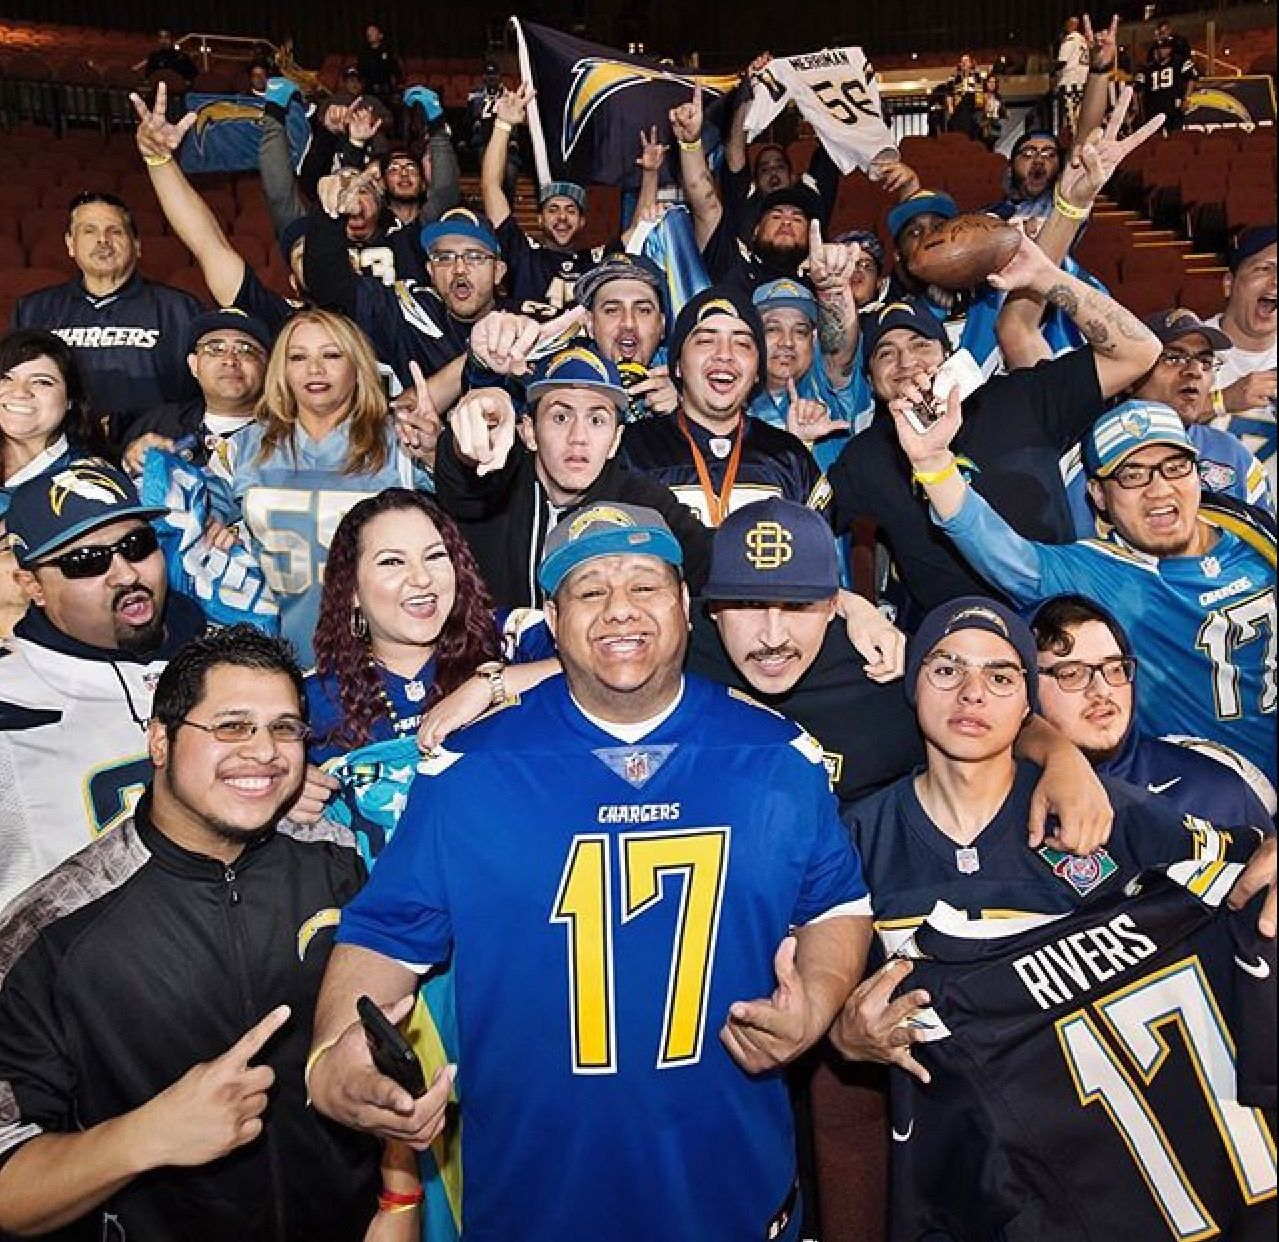 Charger Fans In Los Angeles One Charge San Diego Chargers Los Angeles Chargers Los Angeles